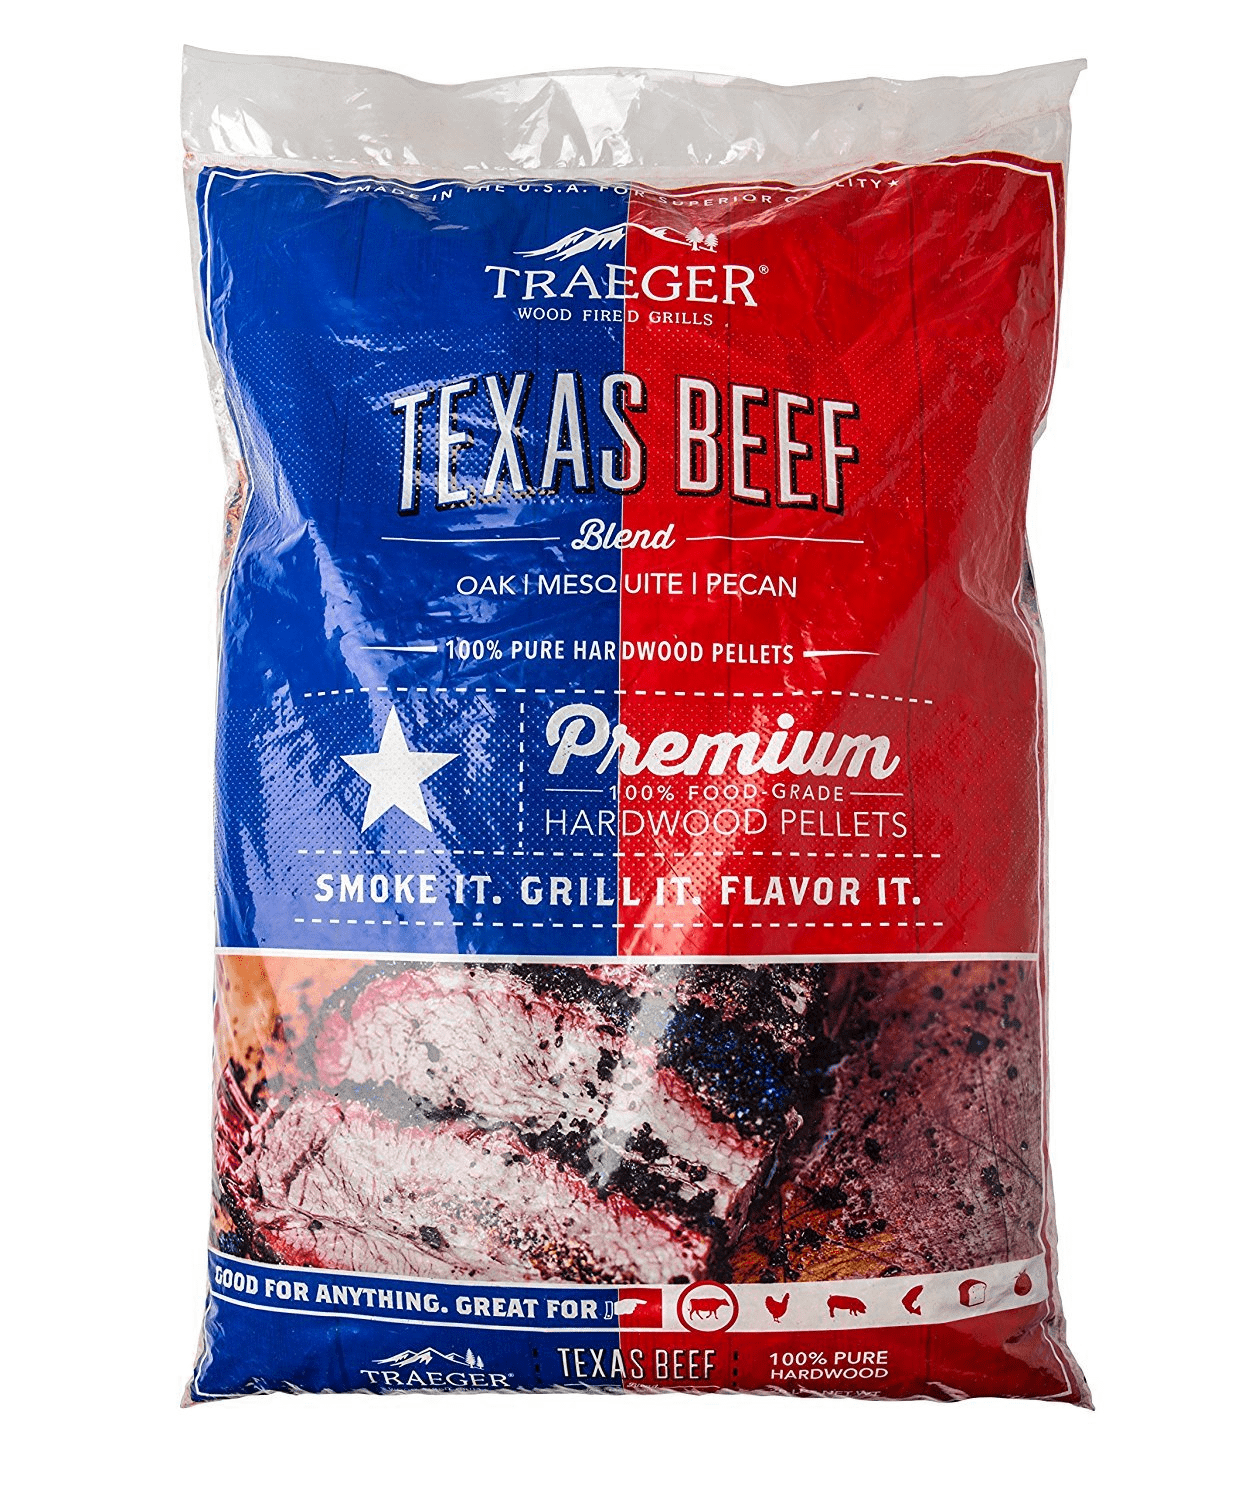 PEL328 | Traeger Texas Beef Blend 100% All-Natural Hardwood Pellets, PEL328